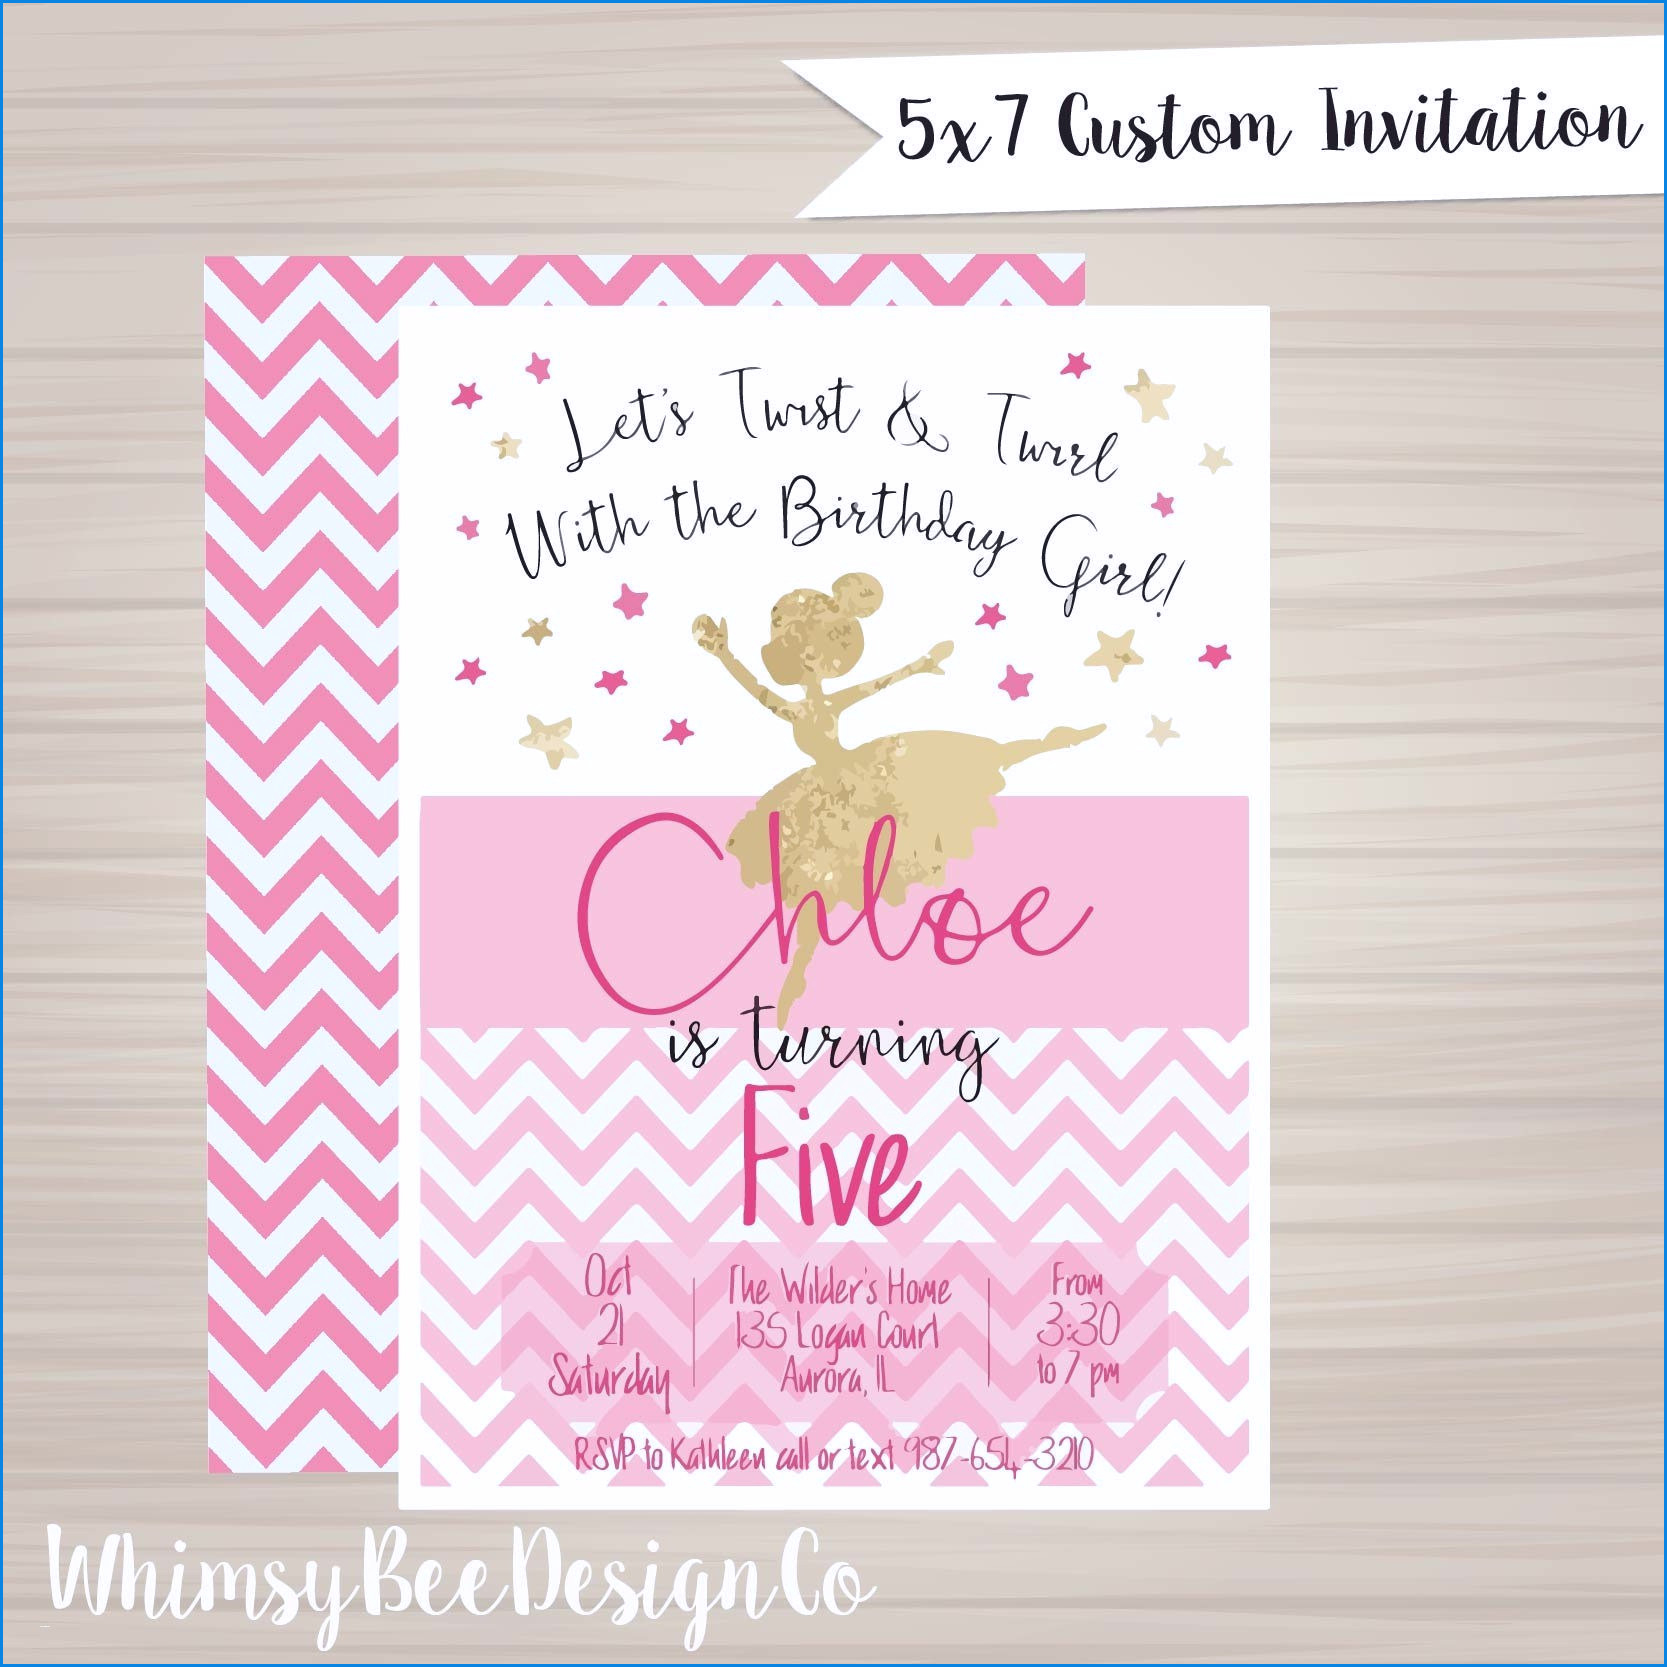 Candyland Invitations Lovely Free Printable Cow Birthday Invitations - Free Printable Cow Birthday Invitations